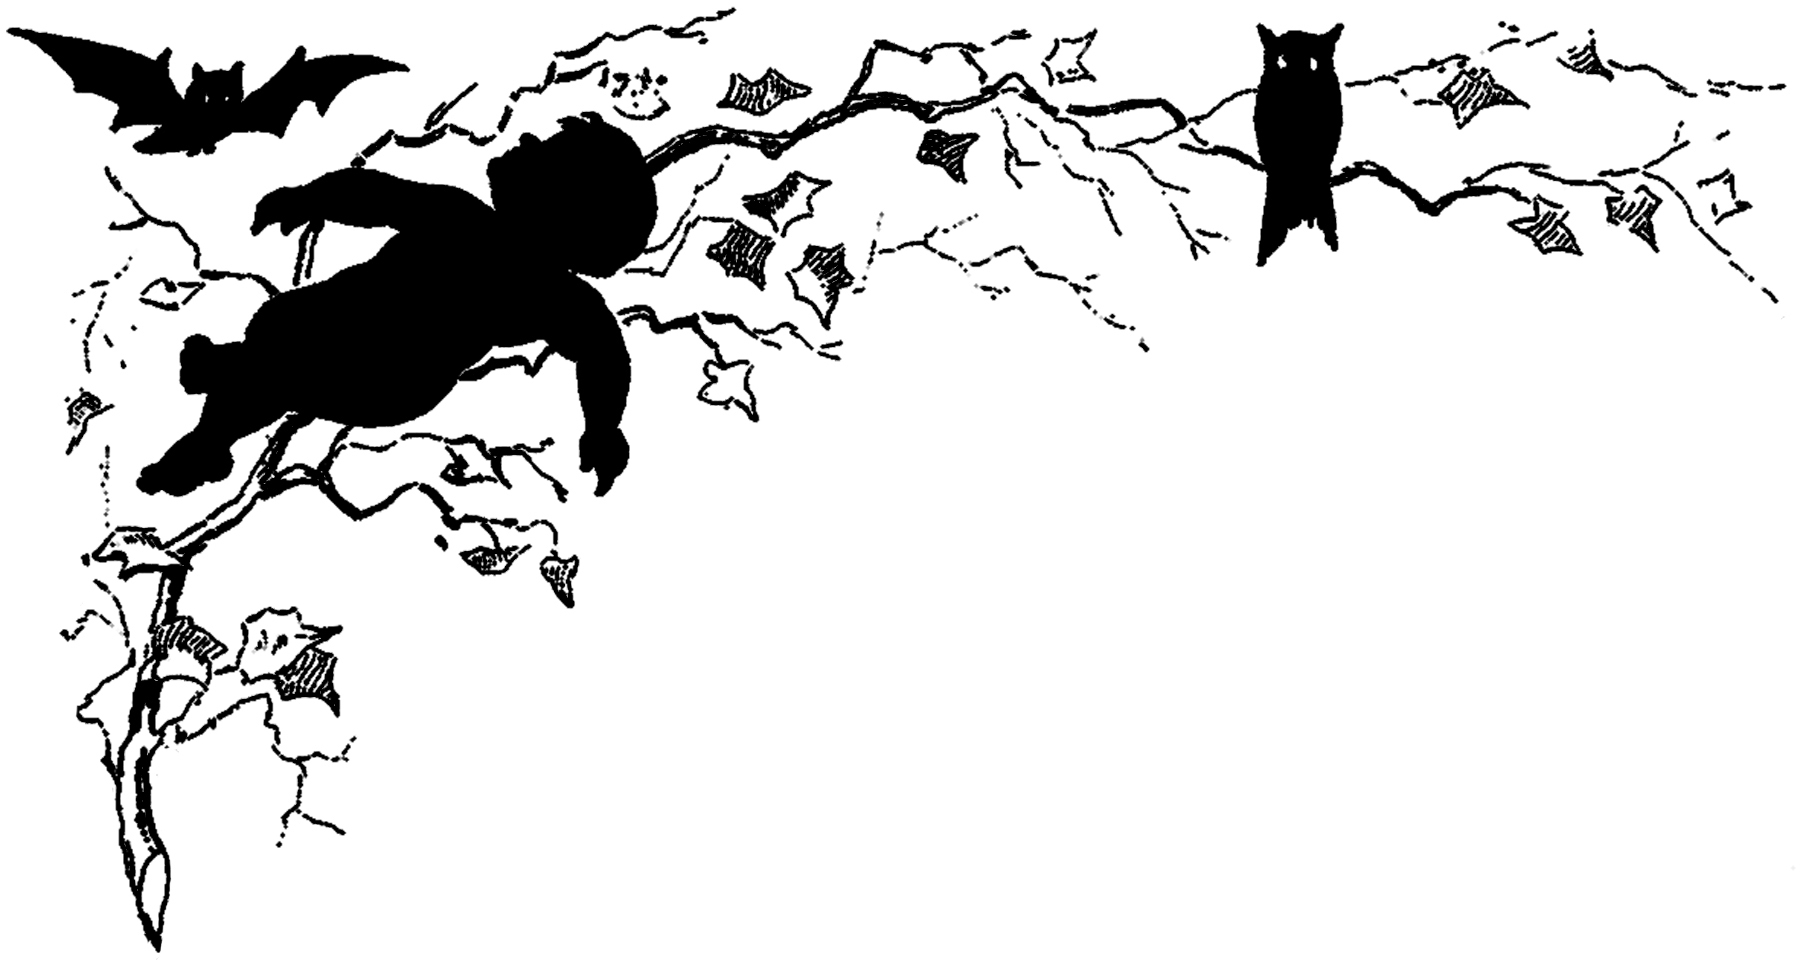 Halloween Silhouette Image - Quirky! - The Graphics Fairy